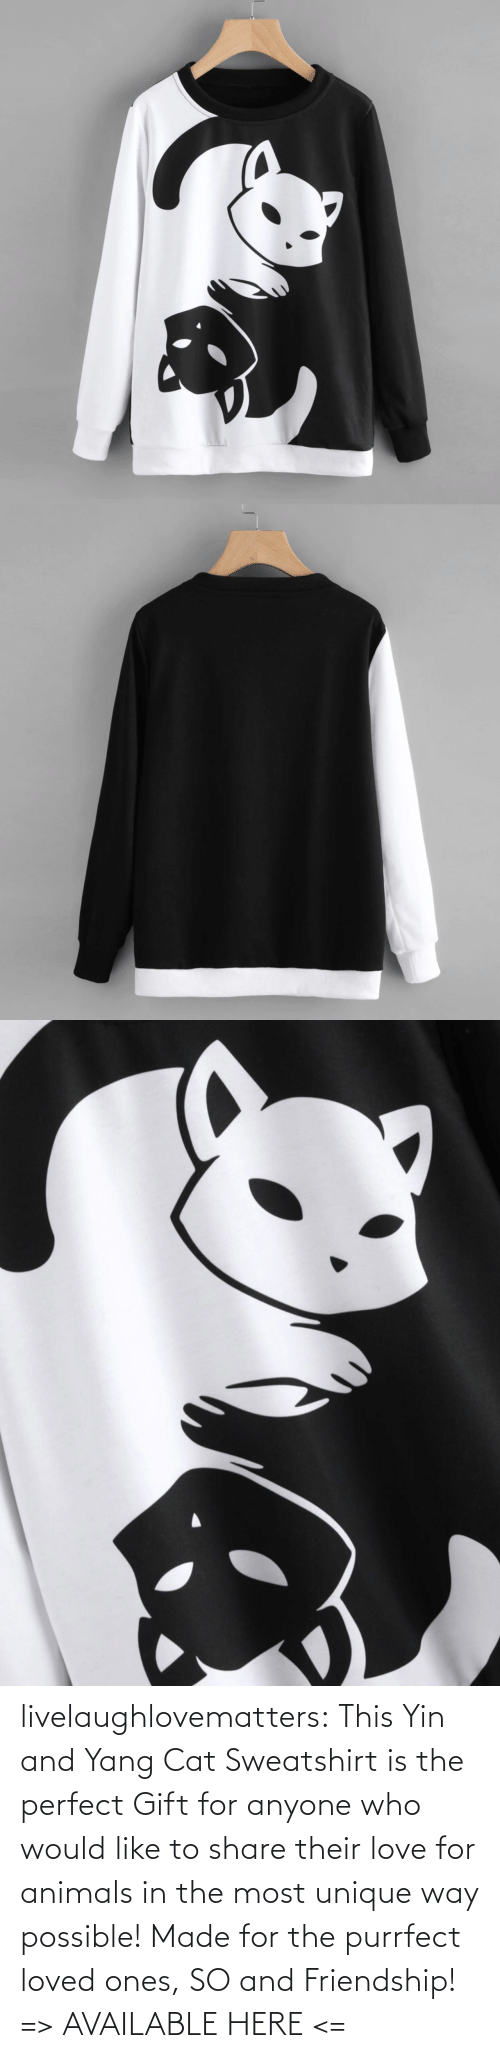 sweatshirt: livelaughlovematters:  This Yin and Yang Cat Sweatshirt is the perfect Gift for anyone who would like to share their love for animals in the most unique way possible! Made for the purrfect loved ones, SO and Friendship! => AVAILABLE HERE <=